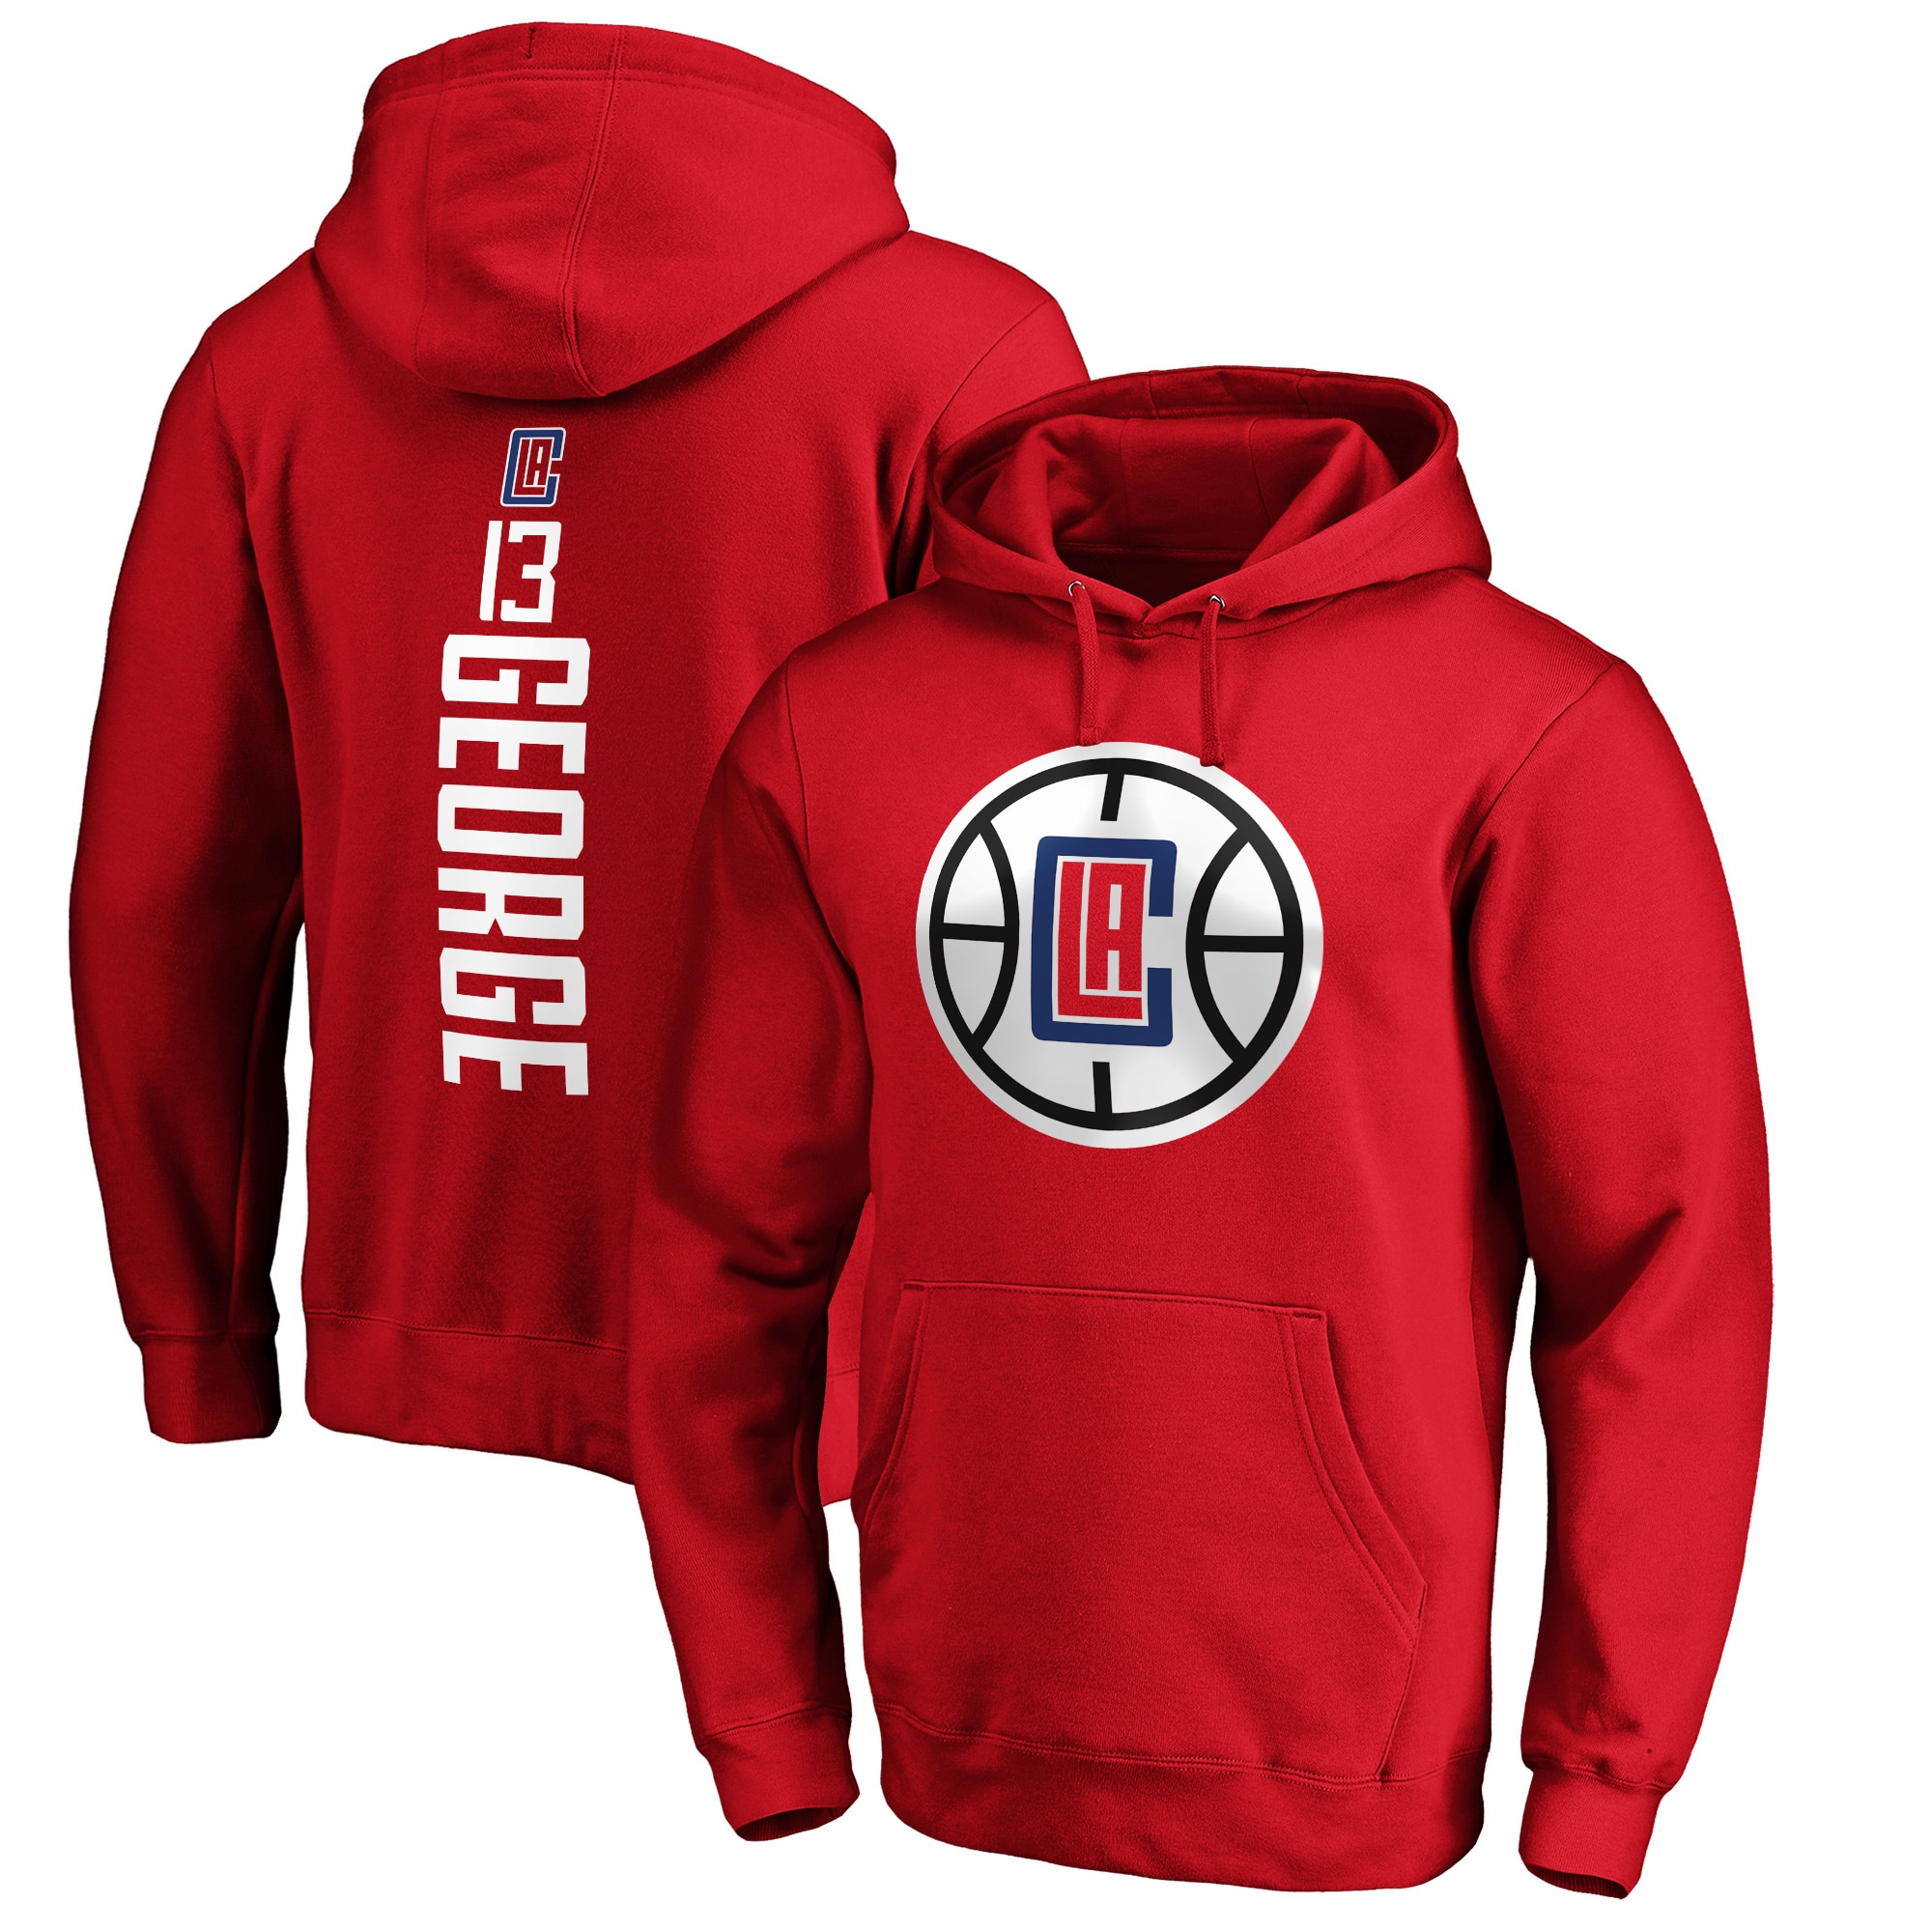 Paul George LA Clippers Fanatics Branded Big & Tall Playmaker Name & Number Pullover Hoodie - Red